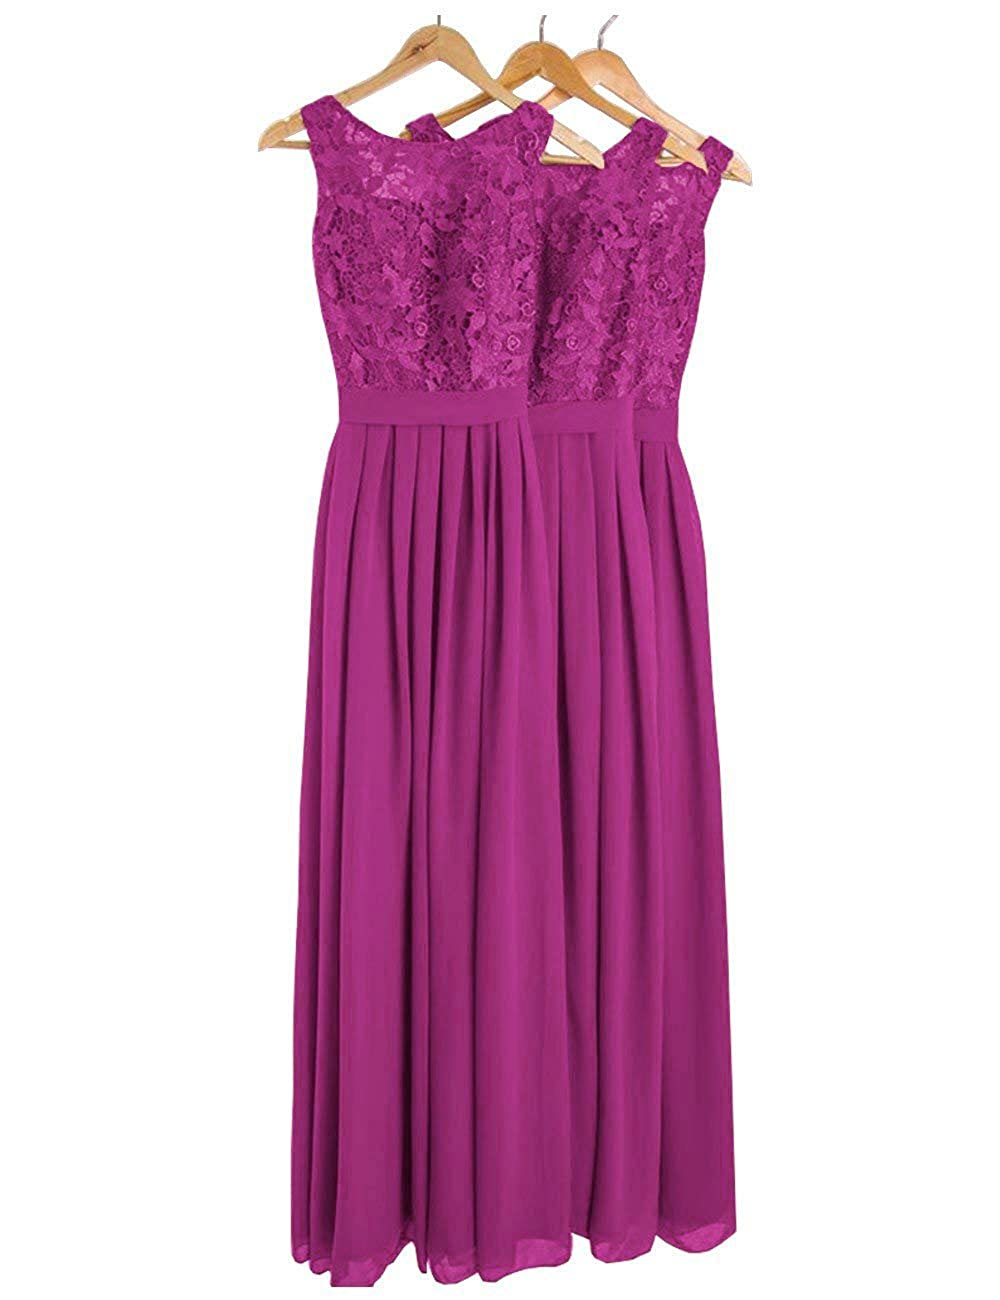 Cdress Long Bridesmaid Dresses Chiffon Maxi Evening Gowns Lace Cocktail Prom Dress CED304